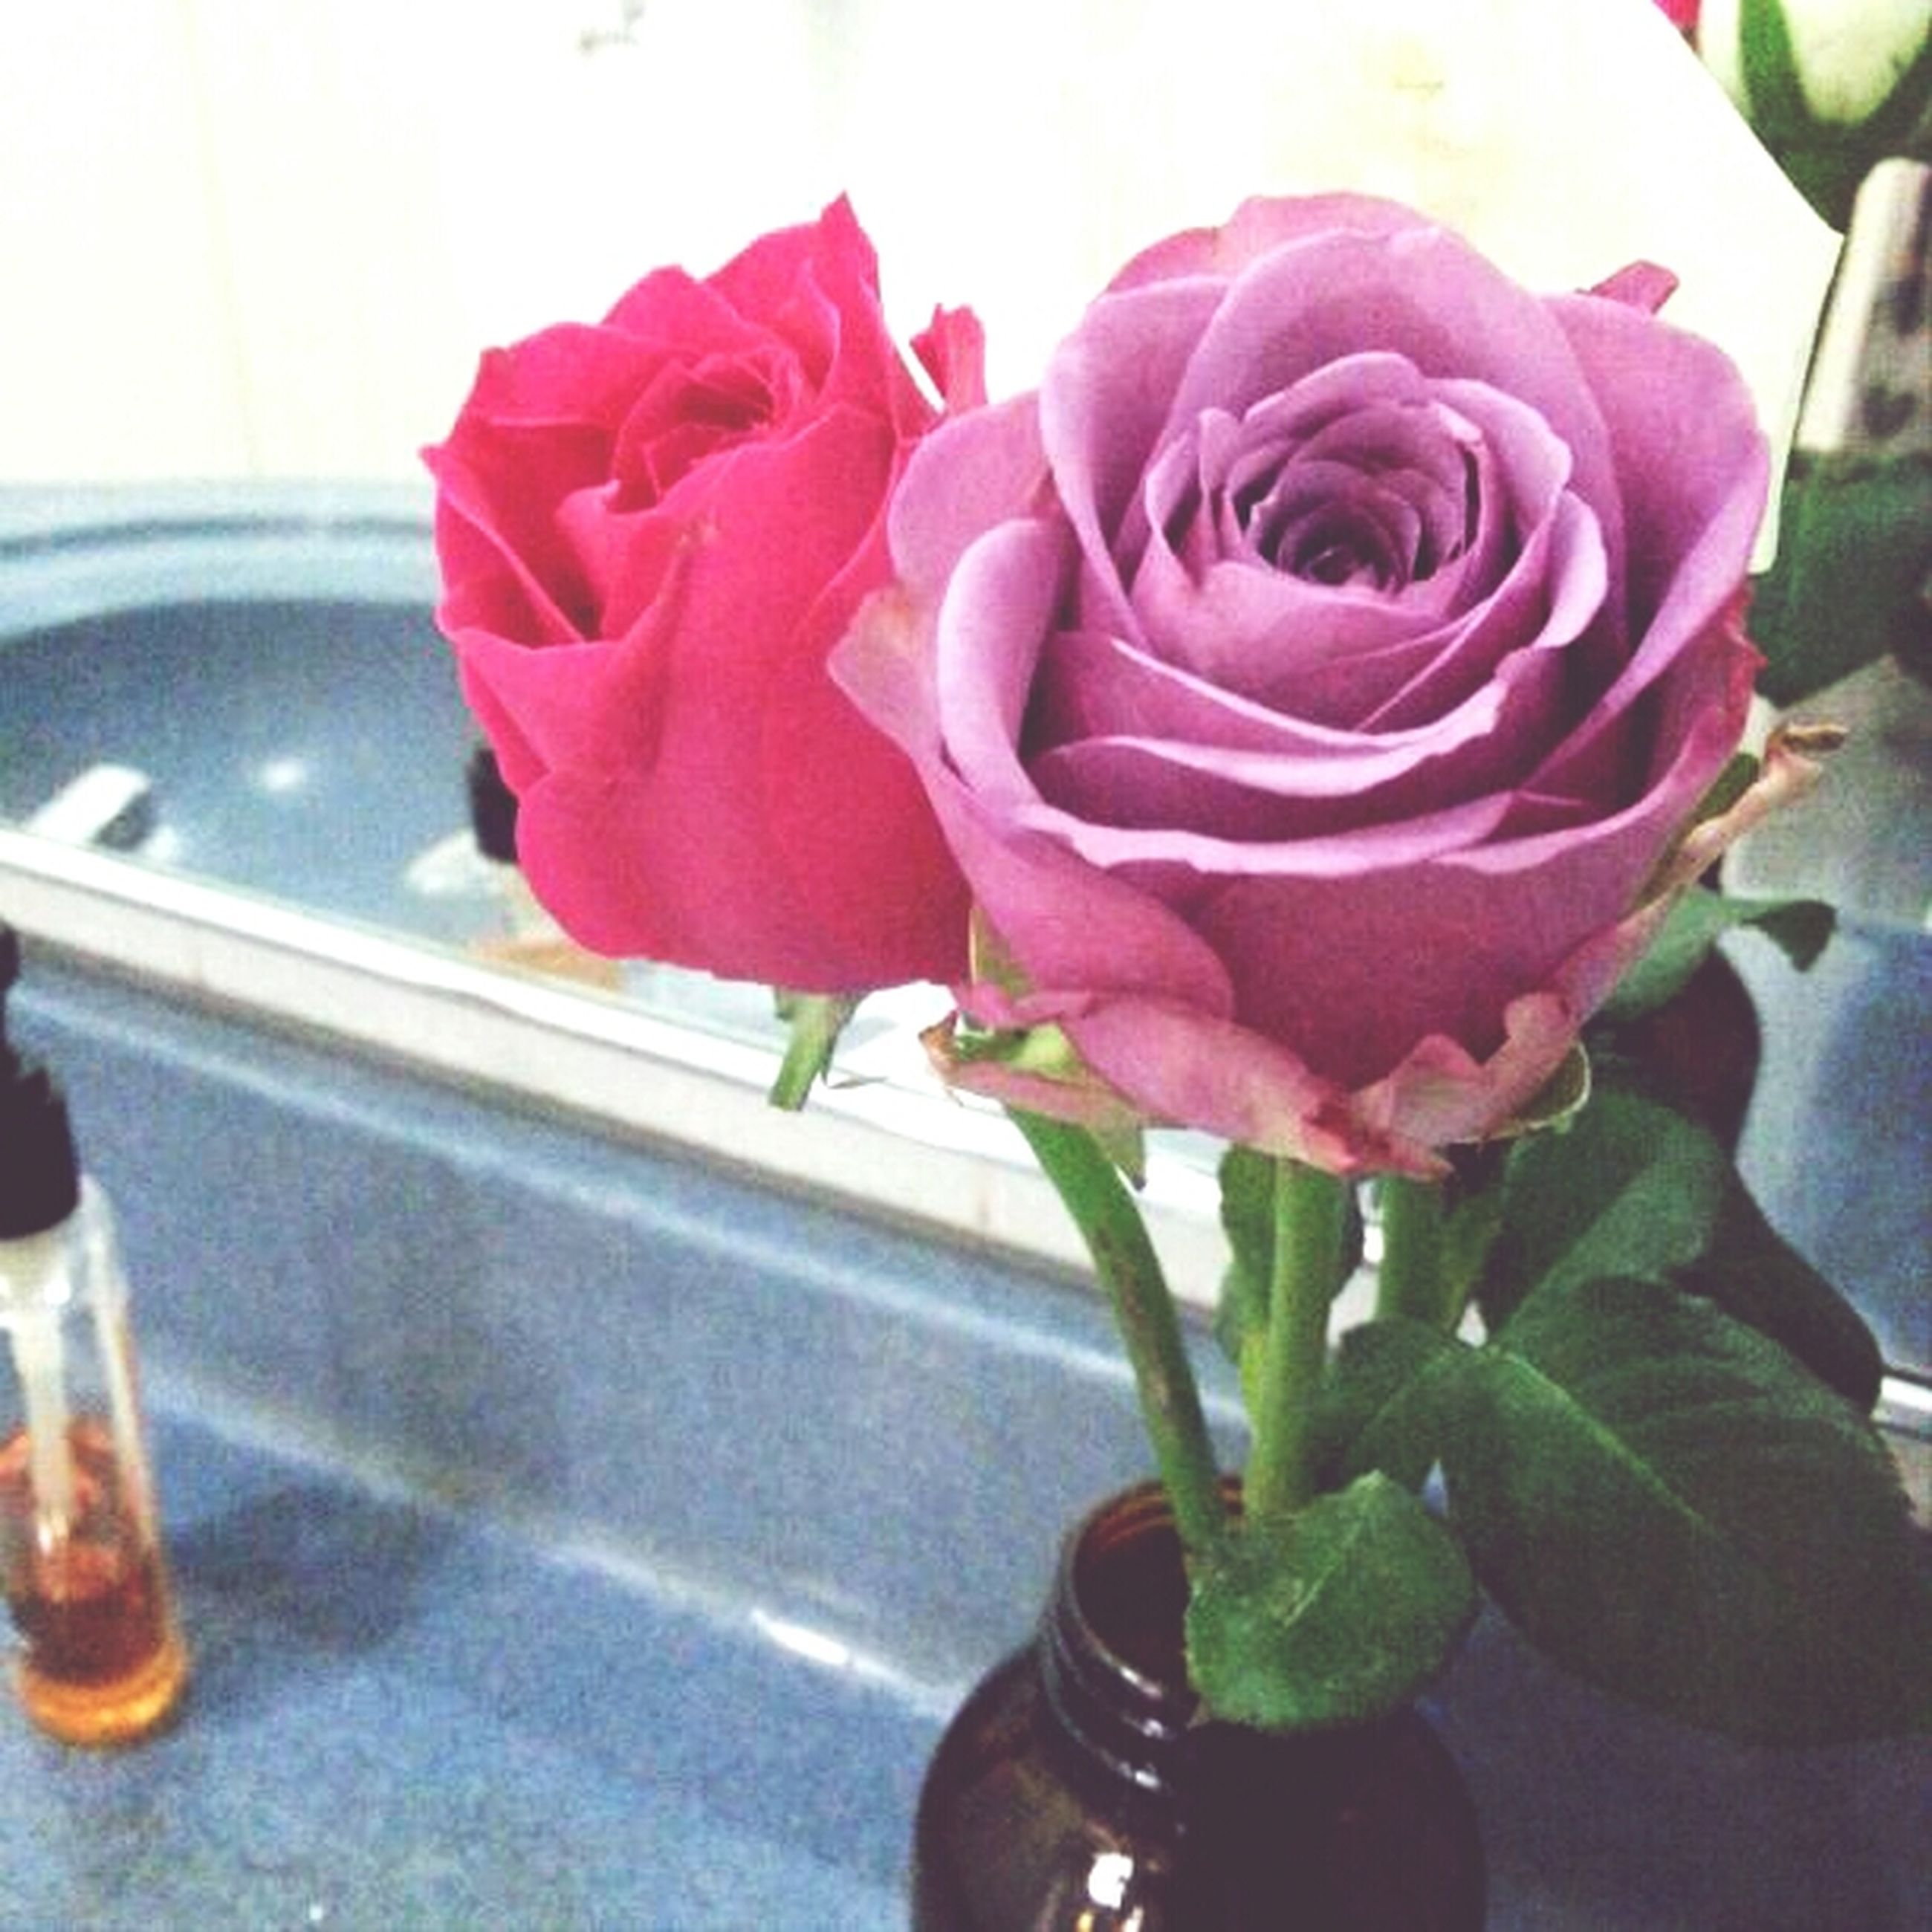 flower, petal, rose - flower, flower head, fragility, freshness, indoors, vase, pink color, close-up, rose, beauty in nature, single flower, plant, nature, growth, blooming, potted plant, focus on foreground, bouquet